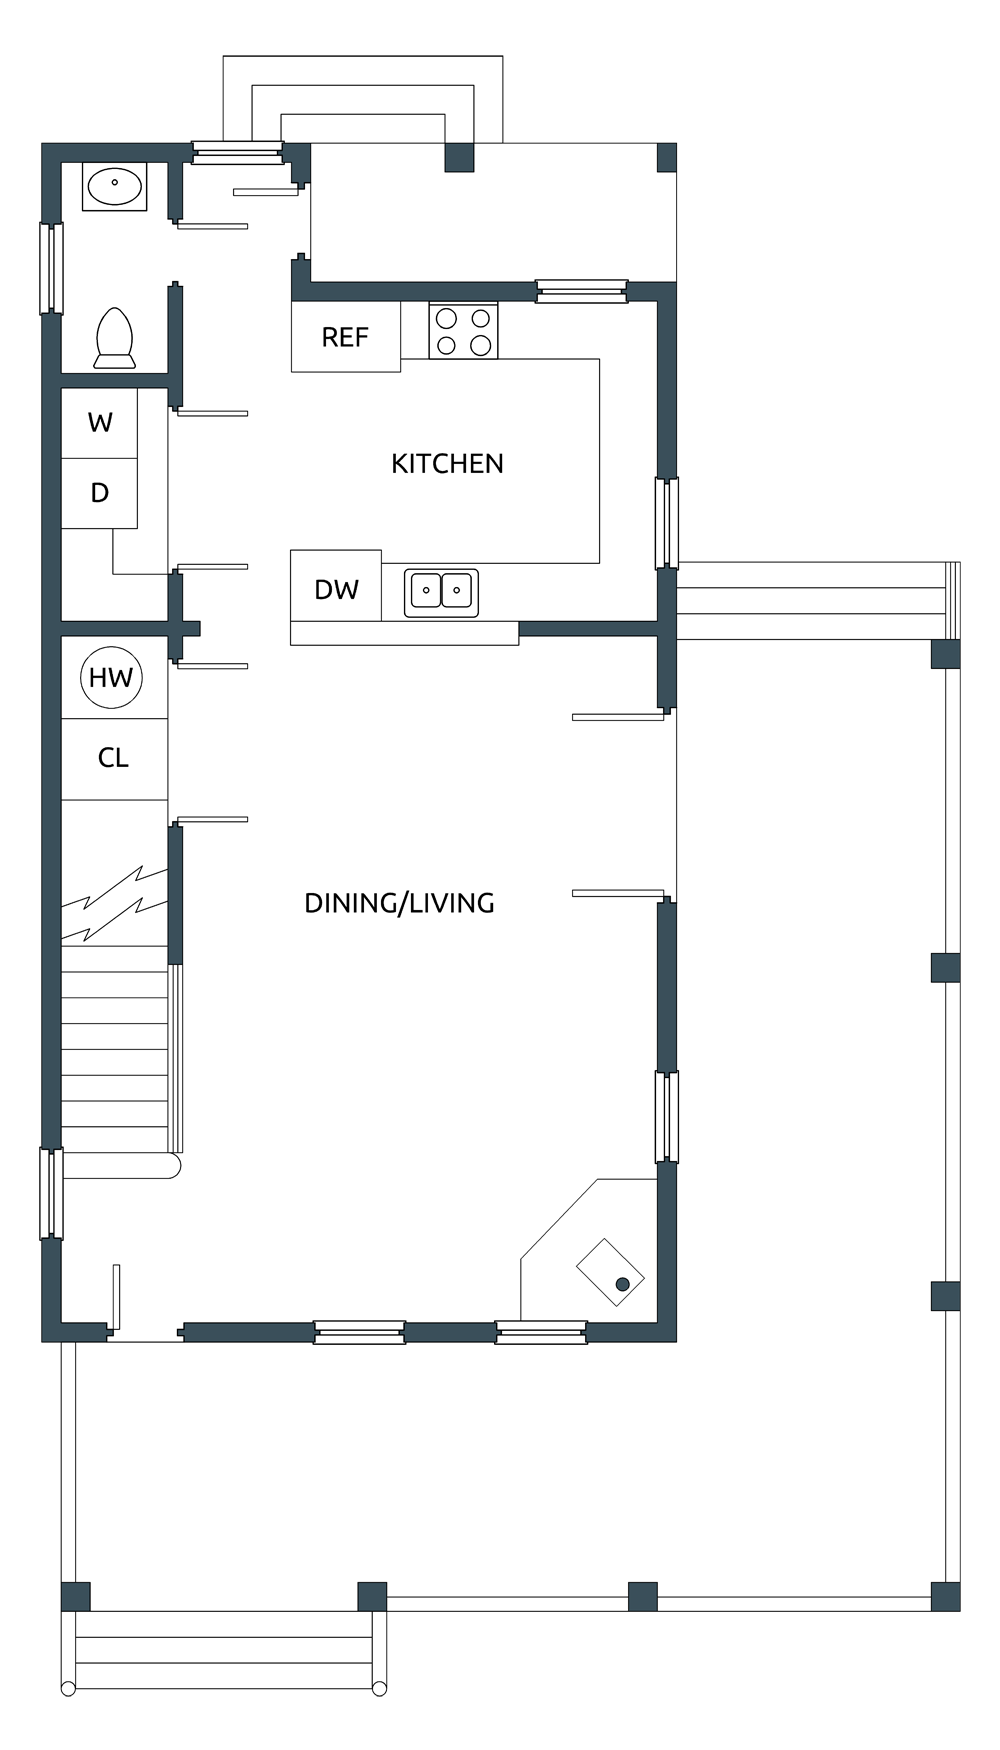 Image Gallery together with New Modern And Countrycottage House Plans further Eod houseplans likewise Small cottage fr further Events. on cottage floor plans